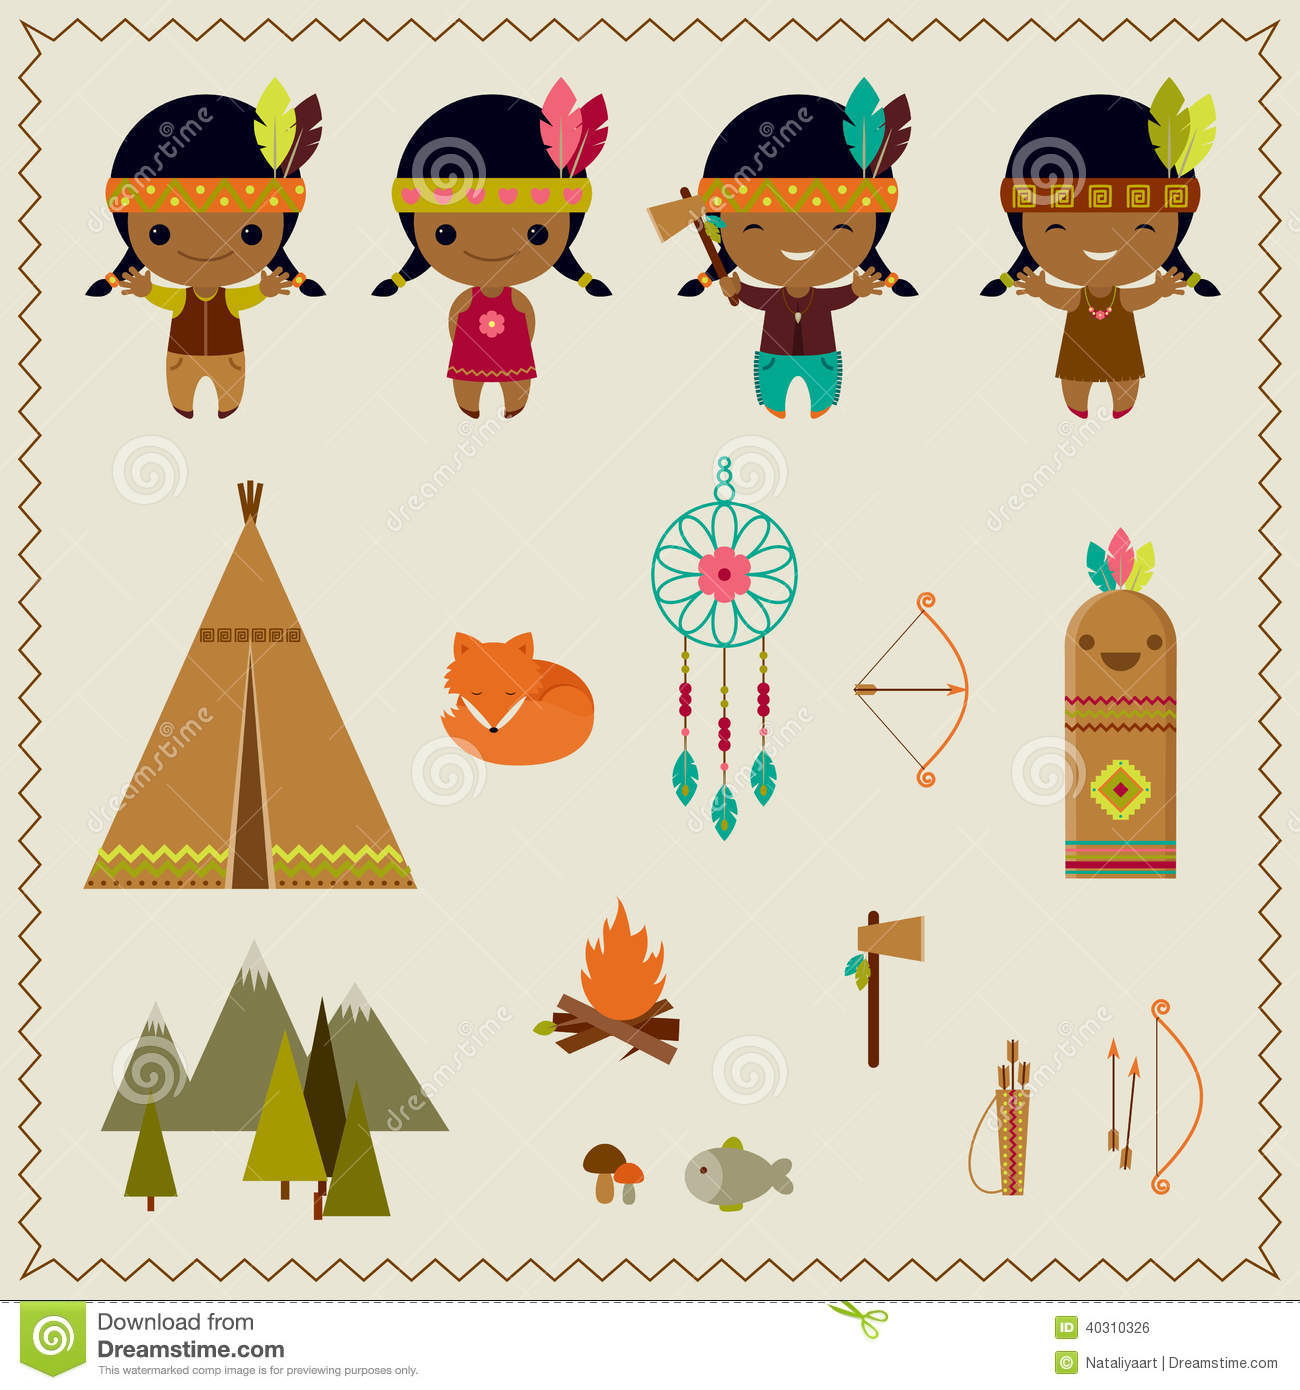 indian clipart - Indians Clipart